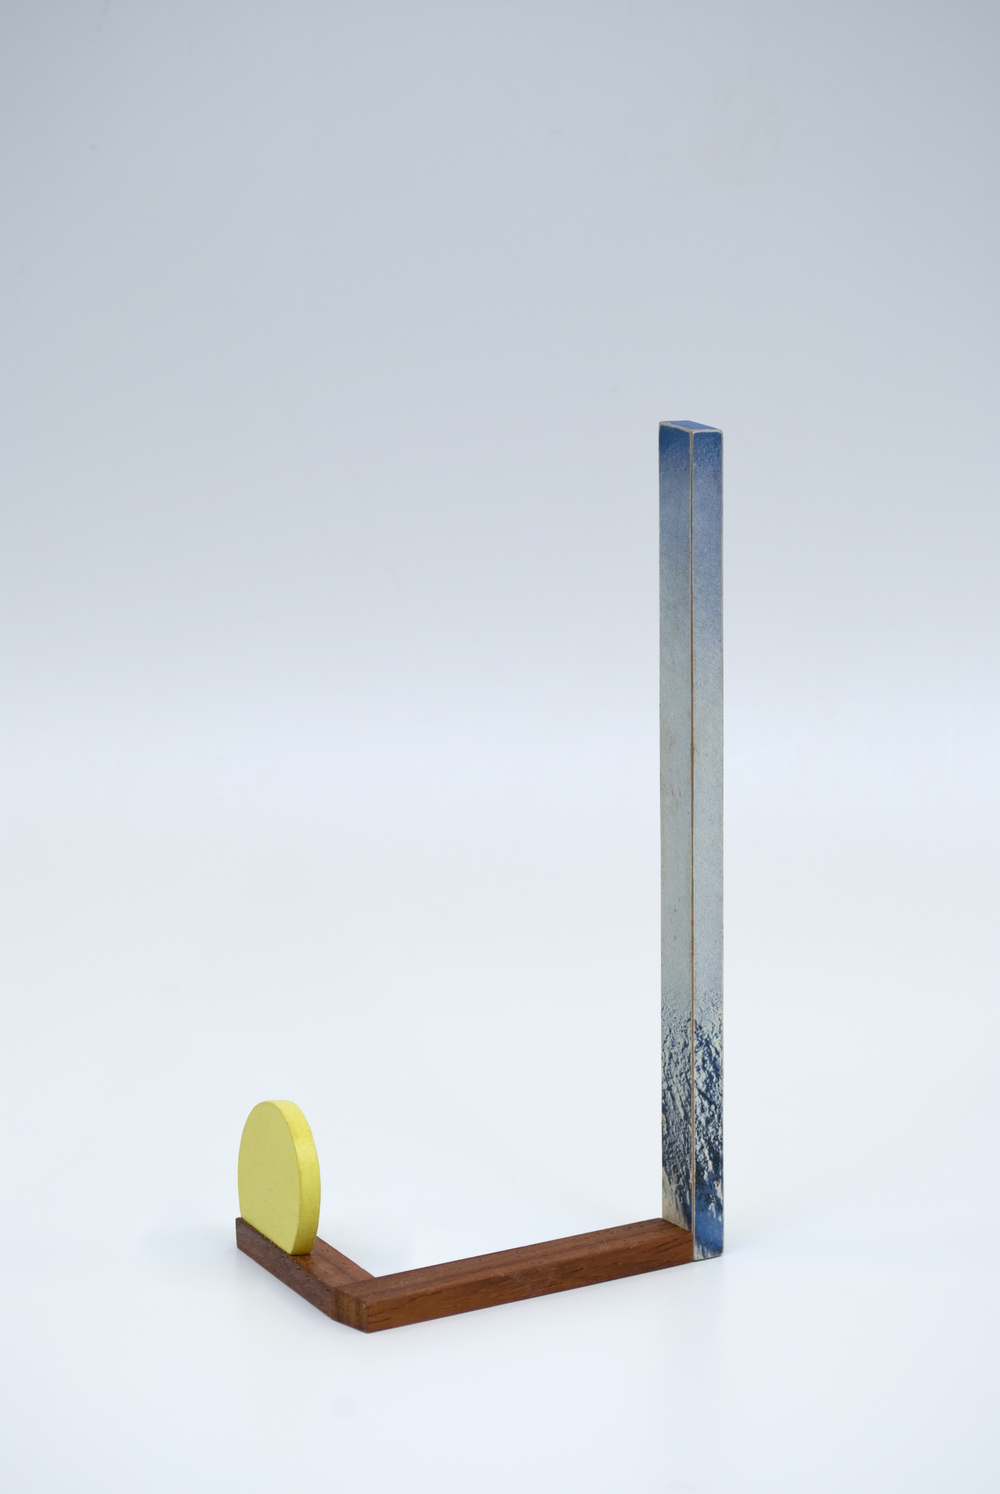 Maquette 7 , 2015  7.5 x 3.5 x 2 inches  Wood, paint, found image